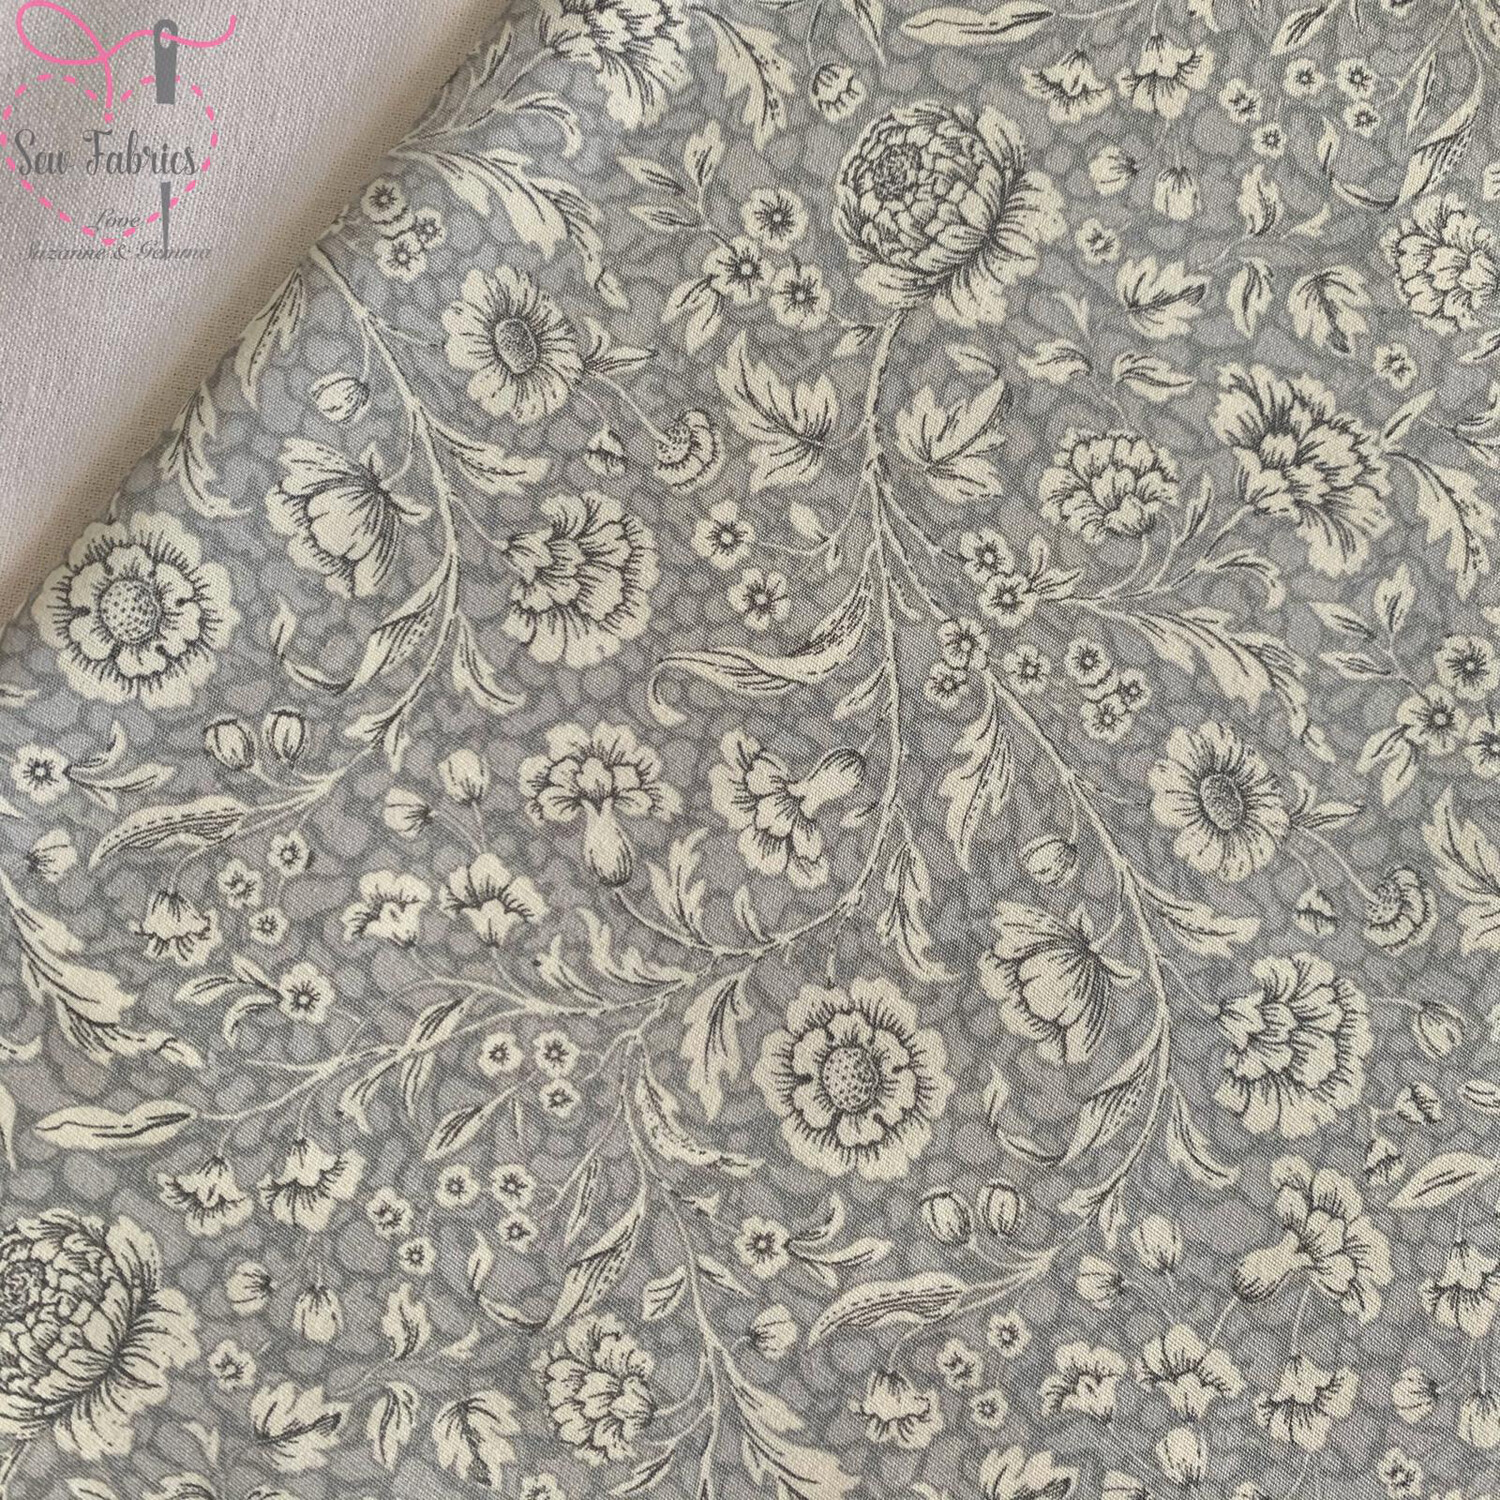 Rose and Hubble Silver Floral Breeze Fabric Vintage Floral 100% Cotton Poplin Flower Material Sewing